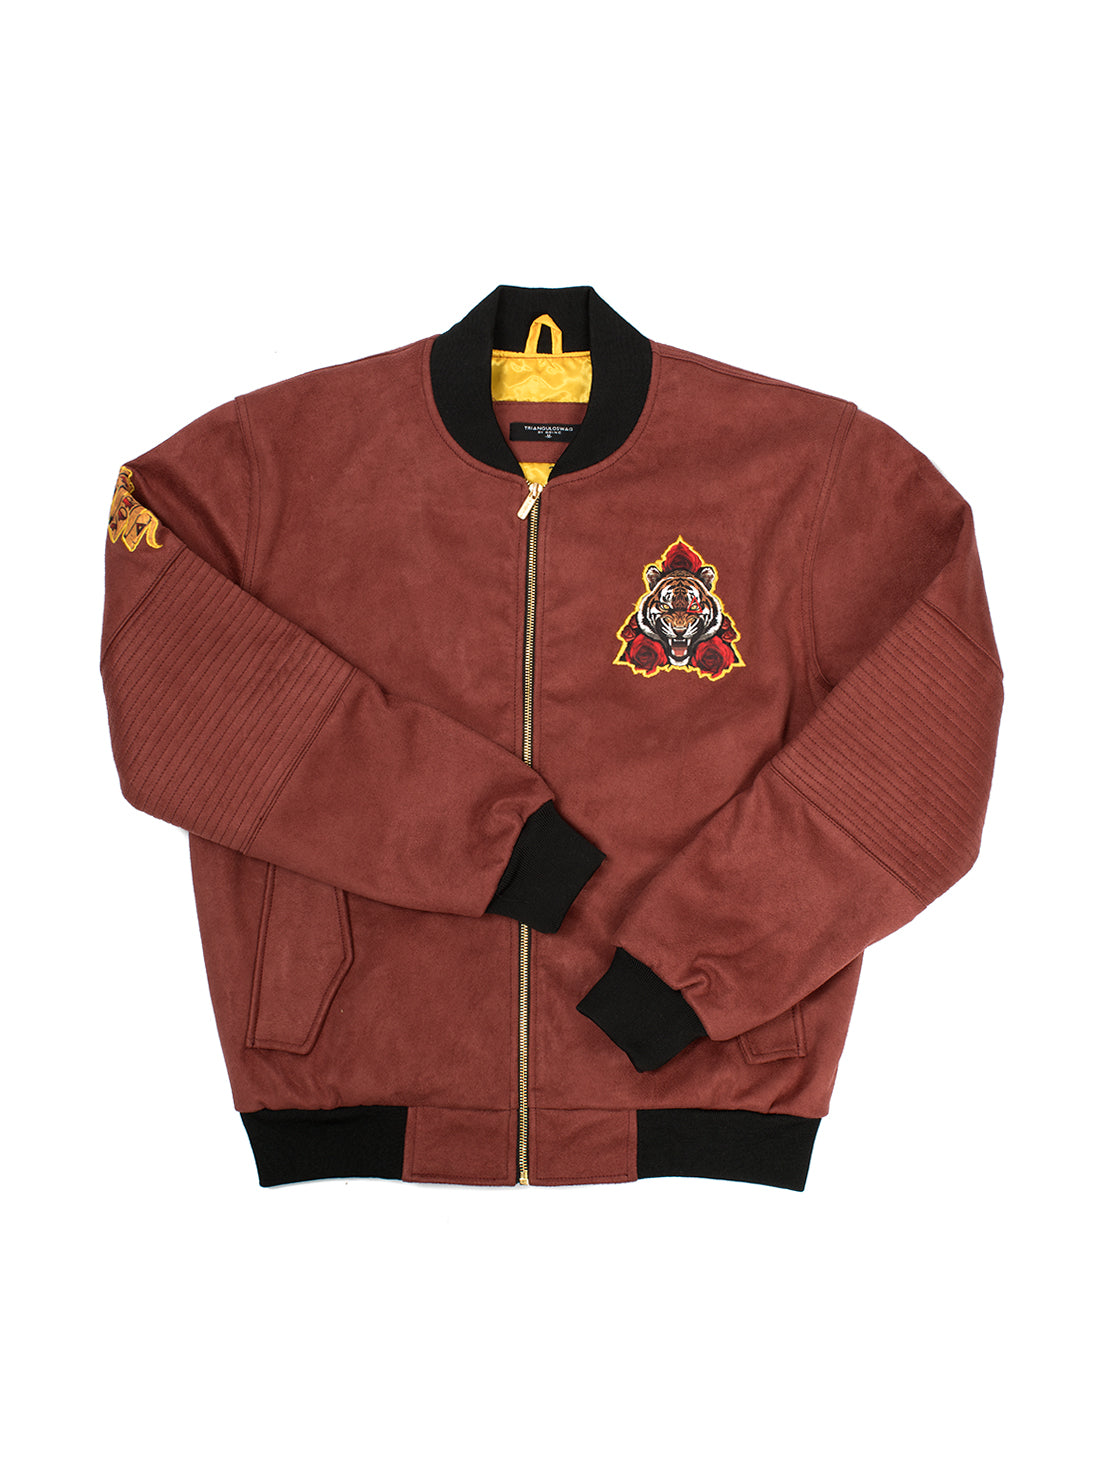 LE TIGER Burgundy SUEDE JACKET - Triangulo Swag